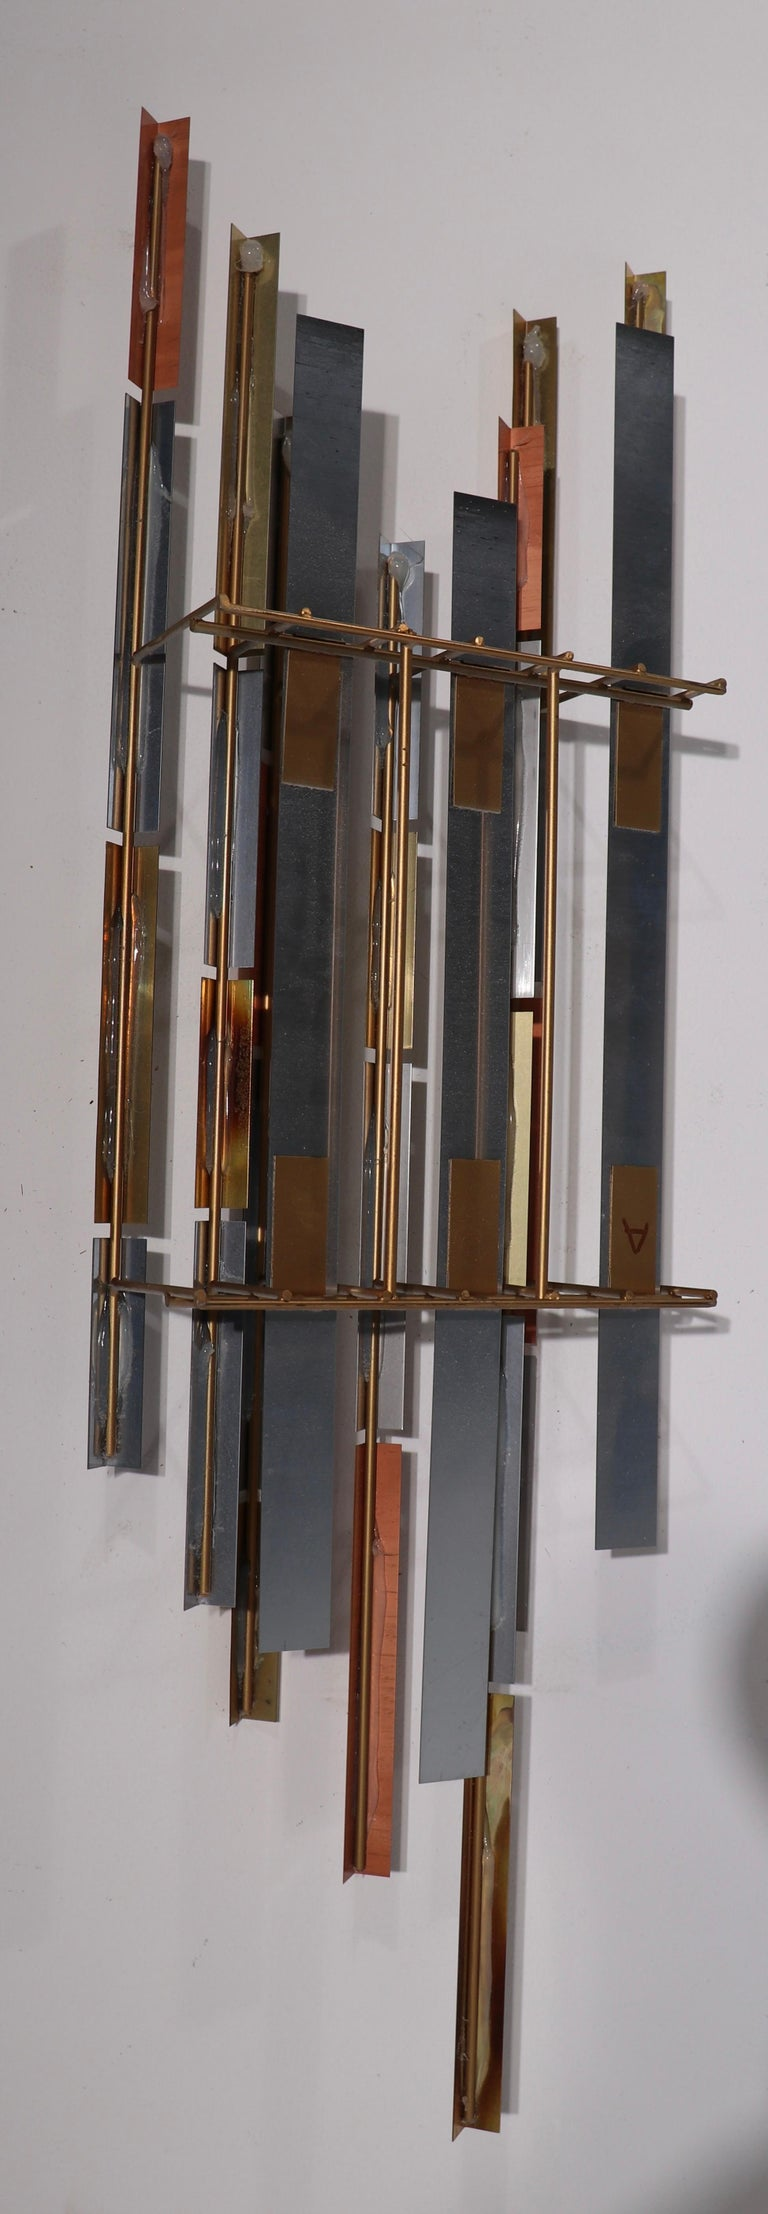 Mixed Metal Modernist Wall Mount Sculpture by R. Berger, 1993 For Sale 6